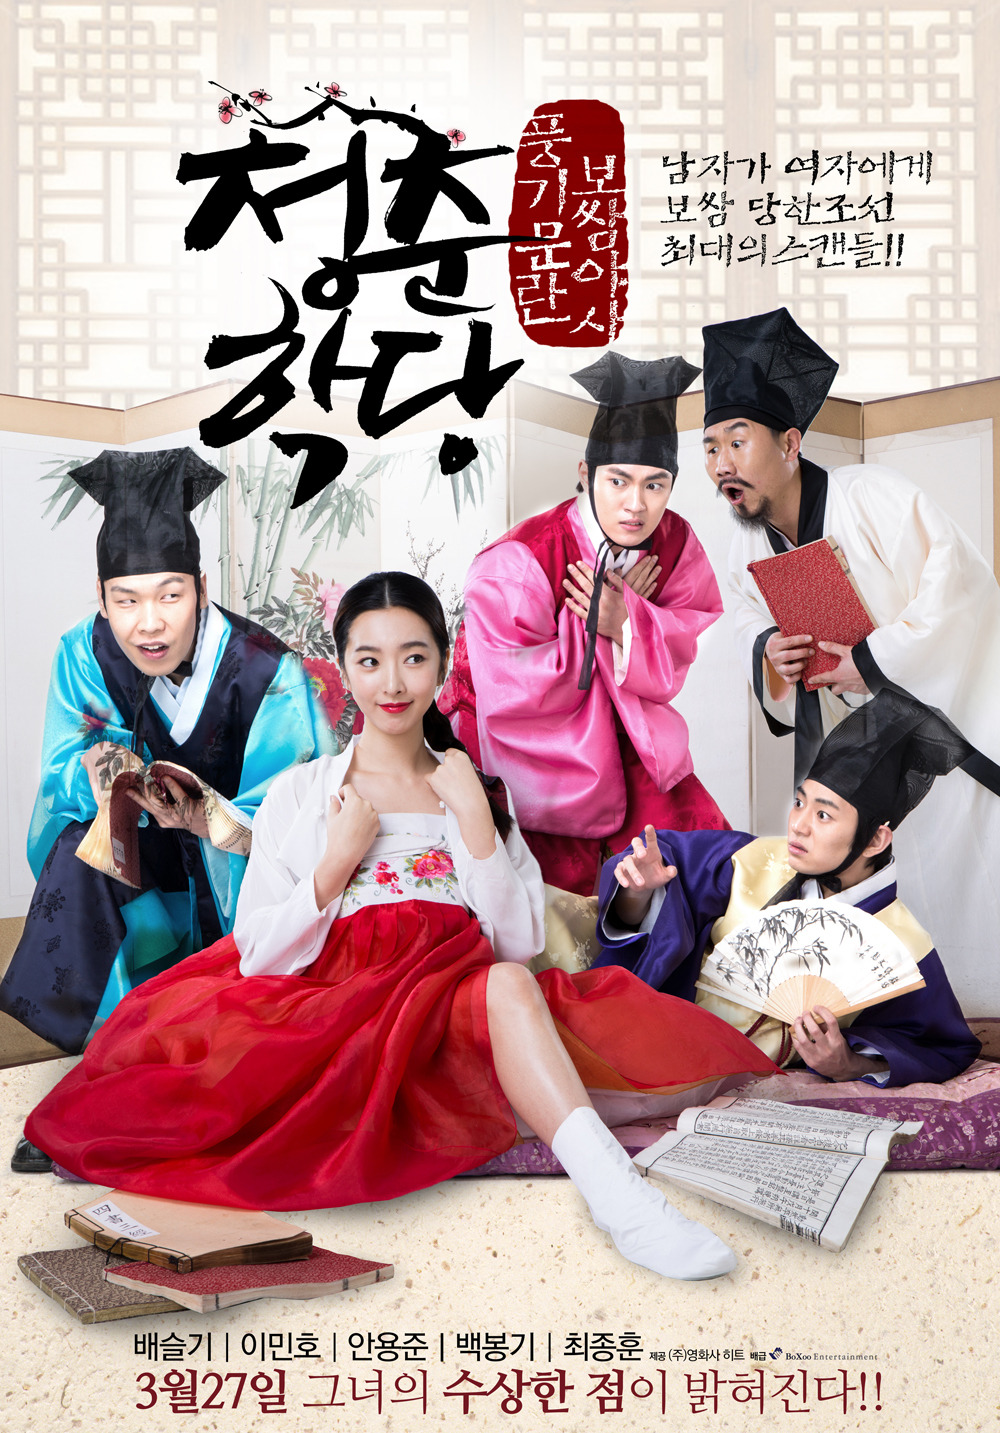 School Of Youth: The Corruption Of Morals 2014